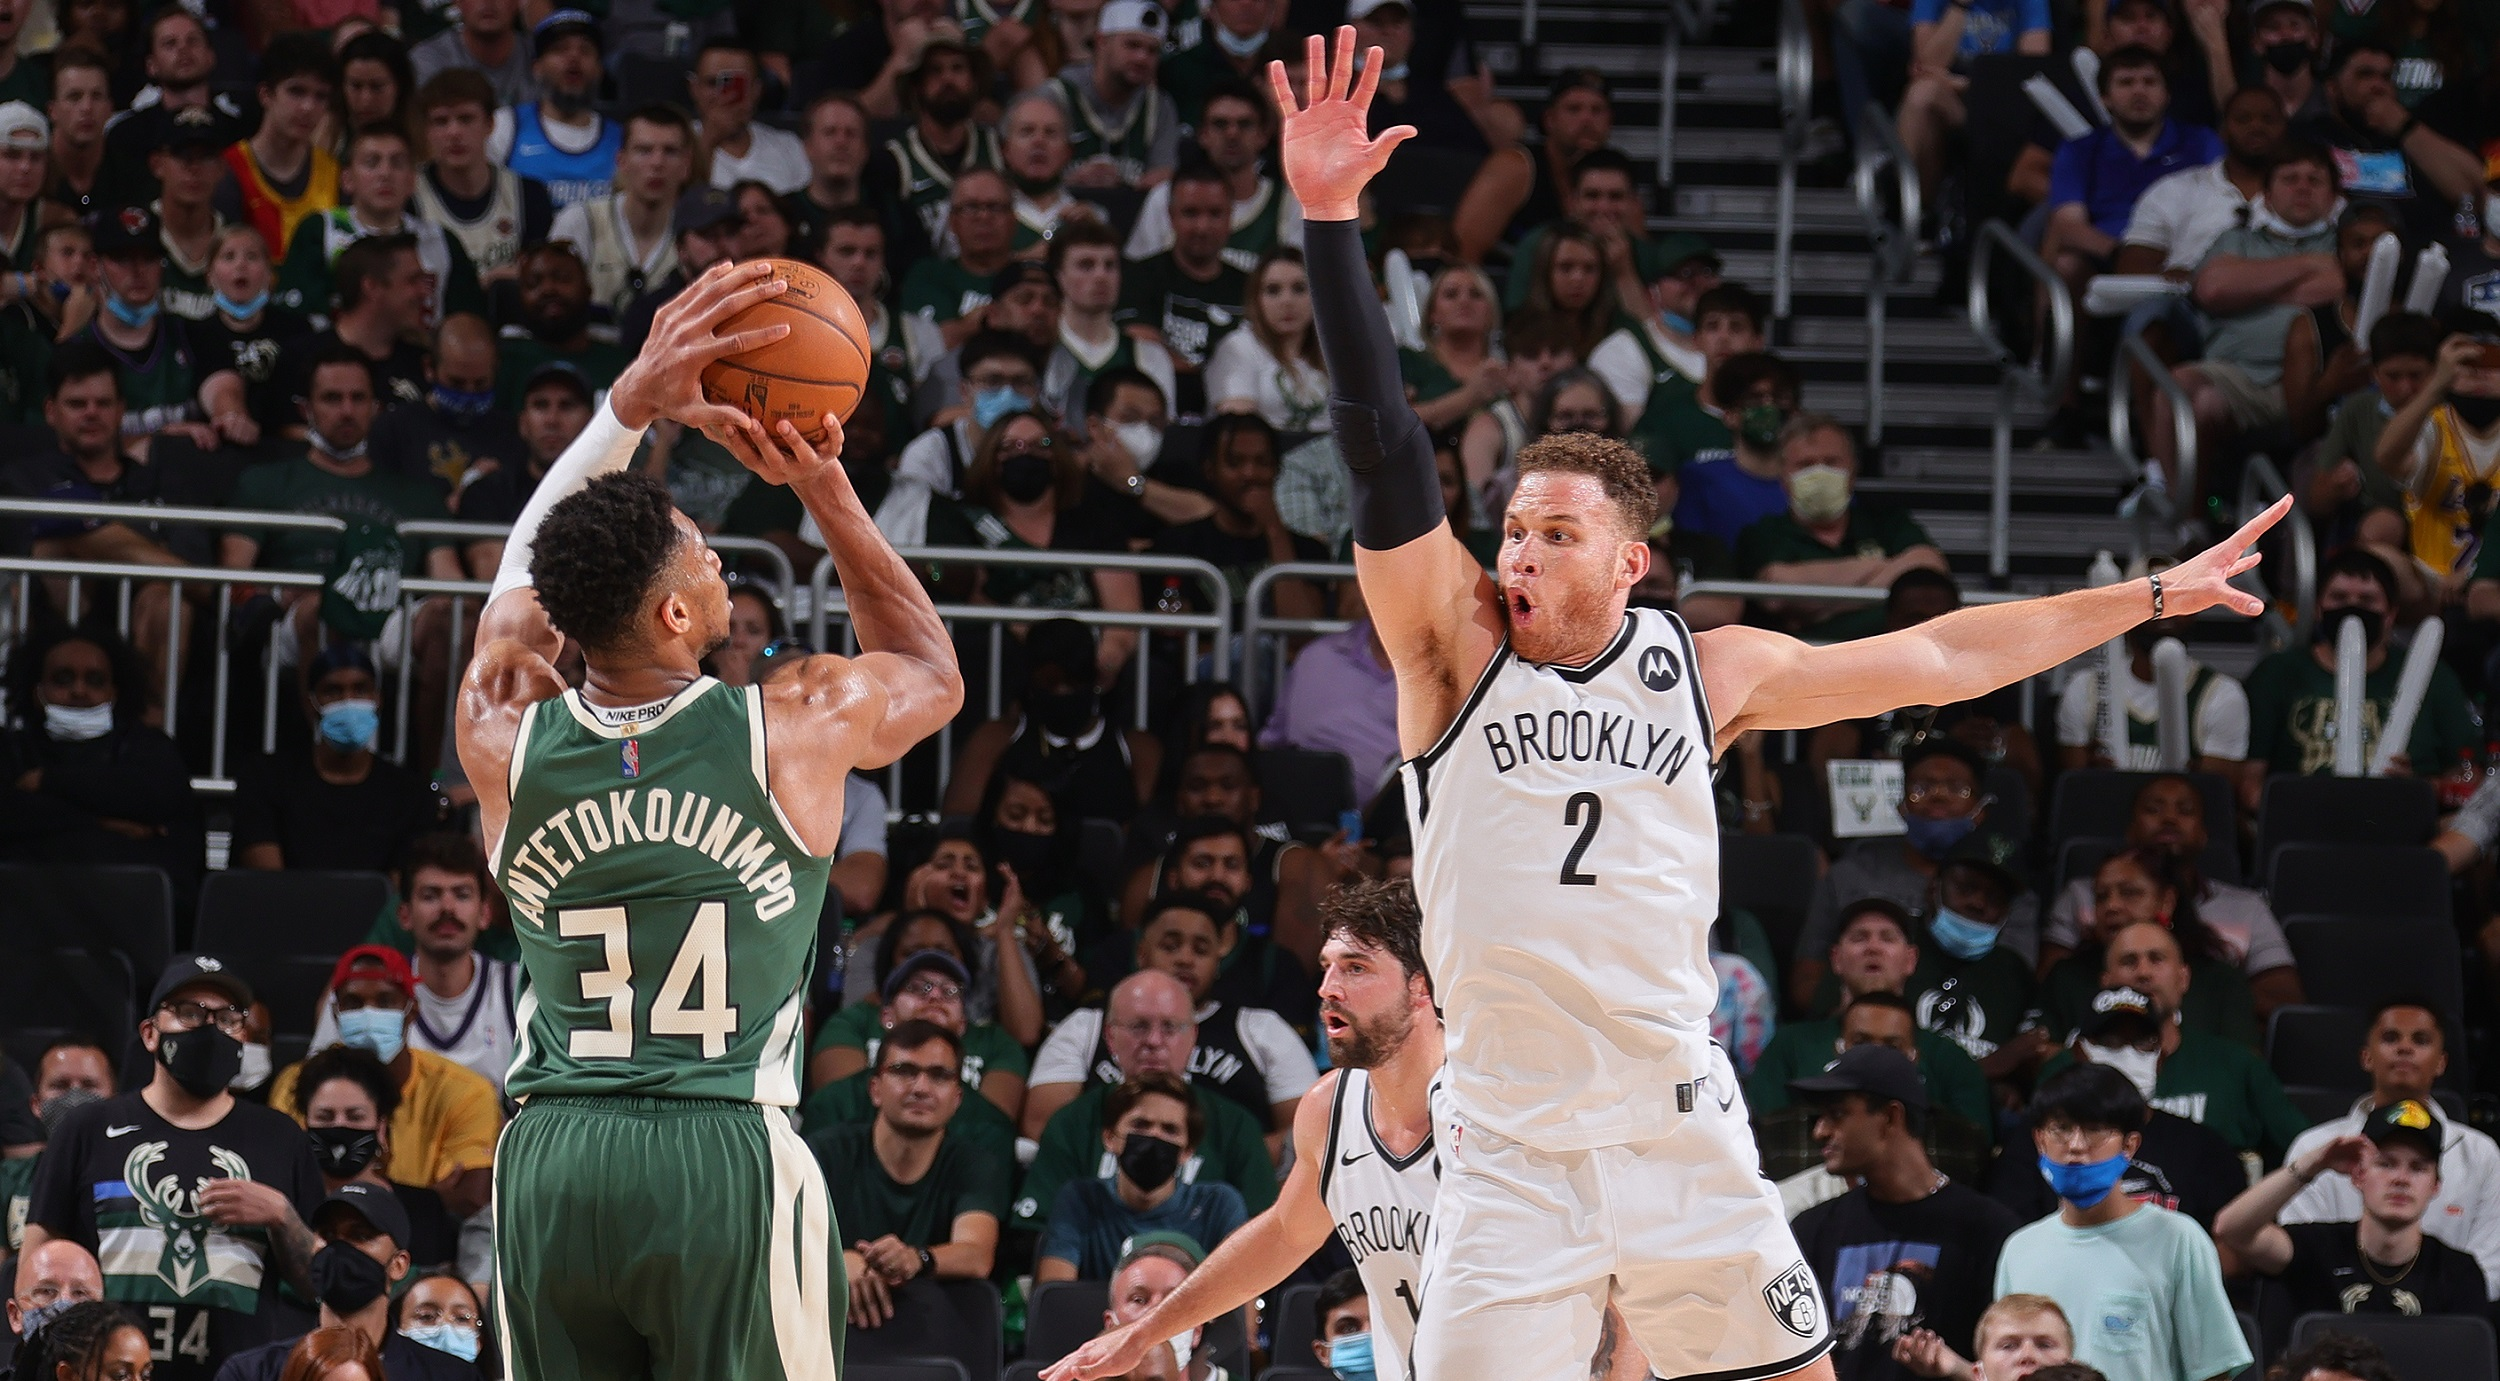 Giannis Antetokounmpo plays into Brooklyn Nets' hands with 3-point fixation